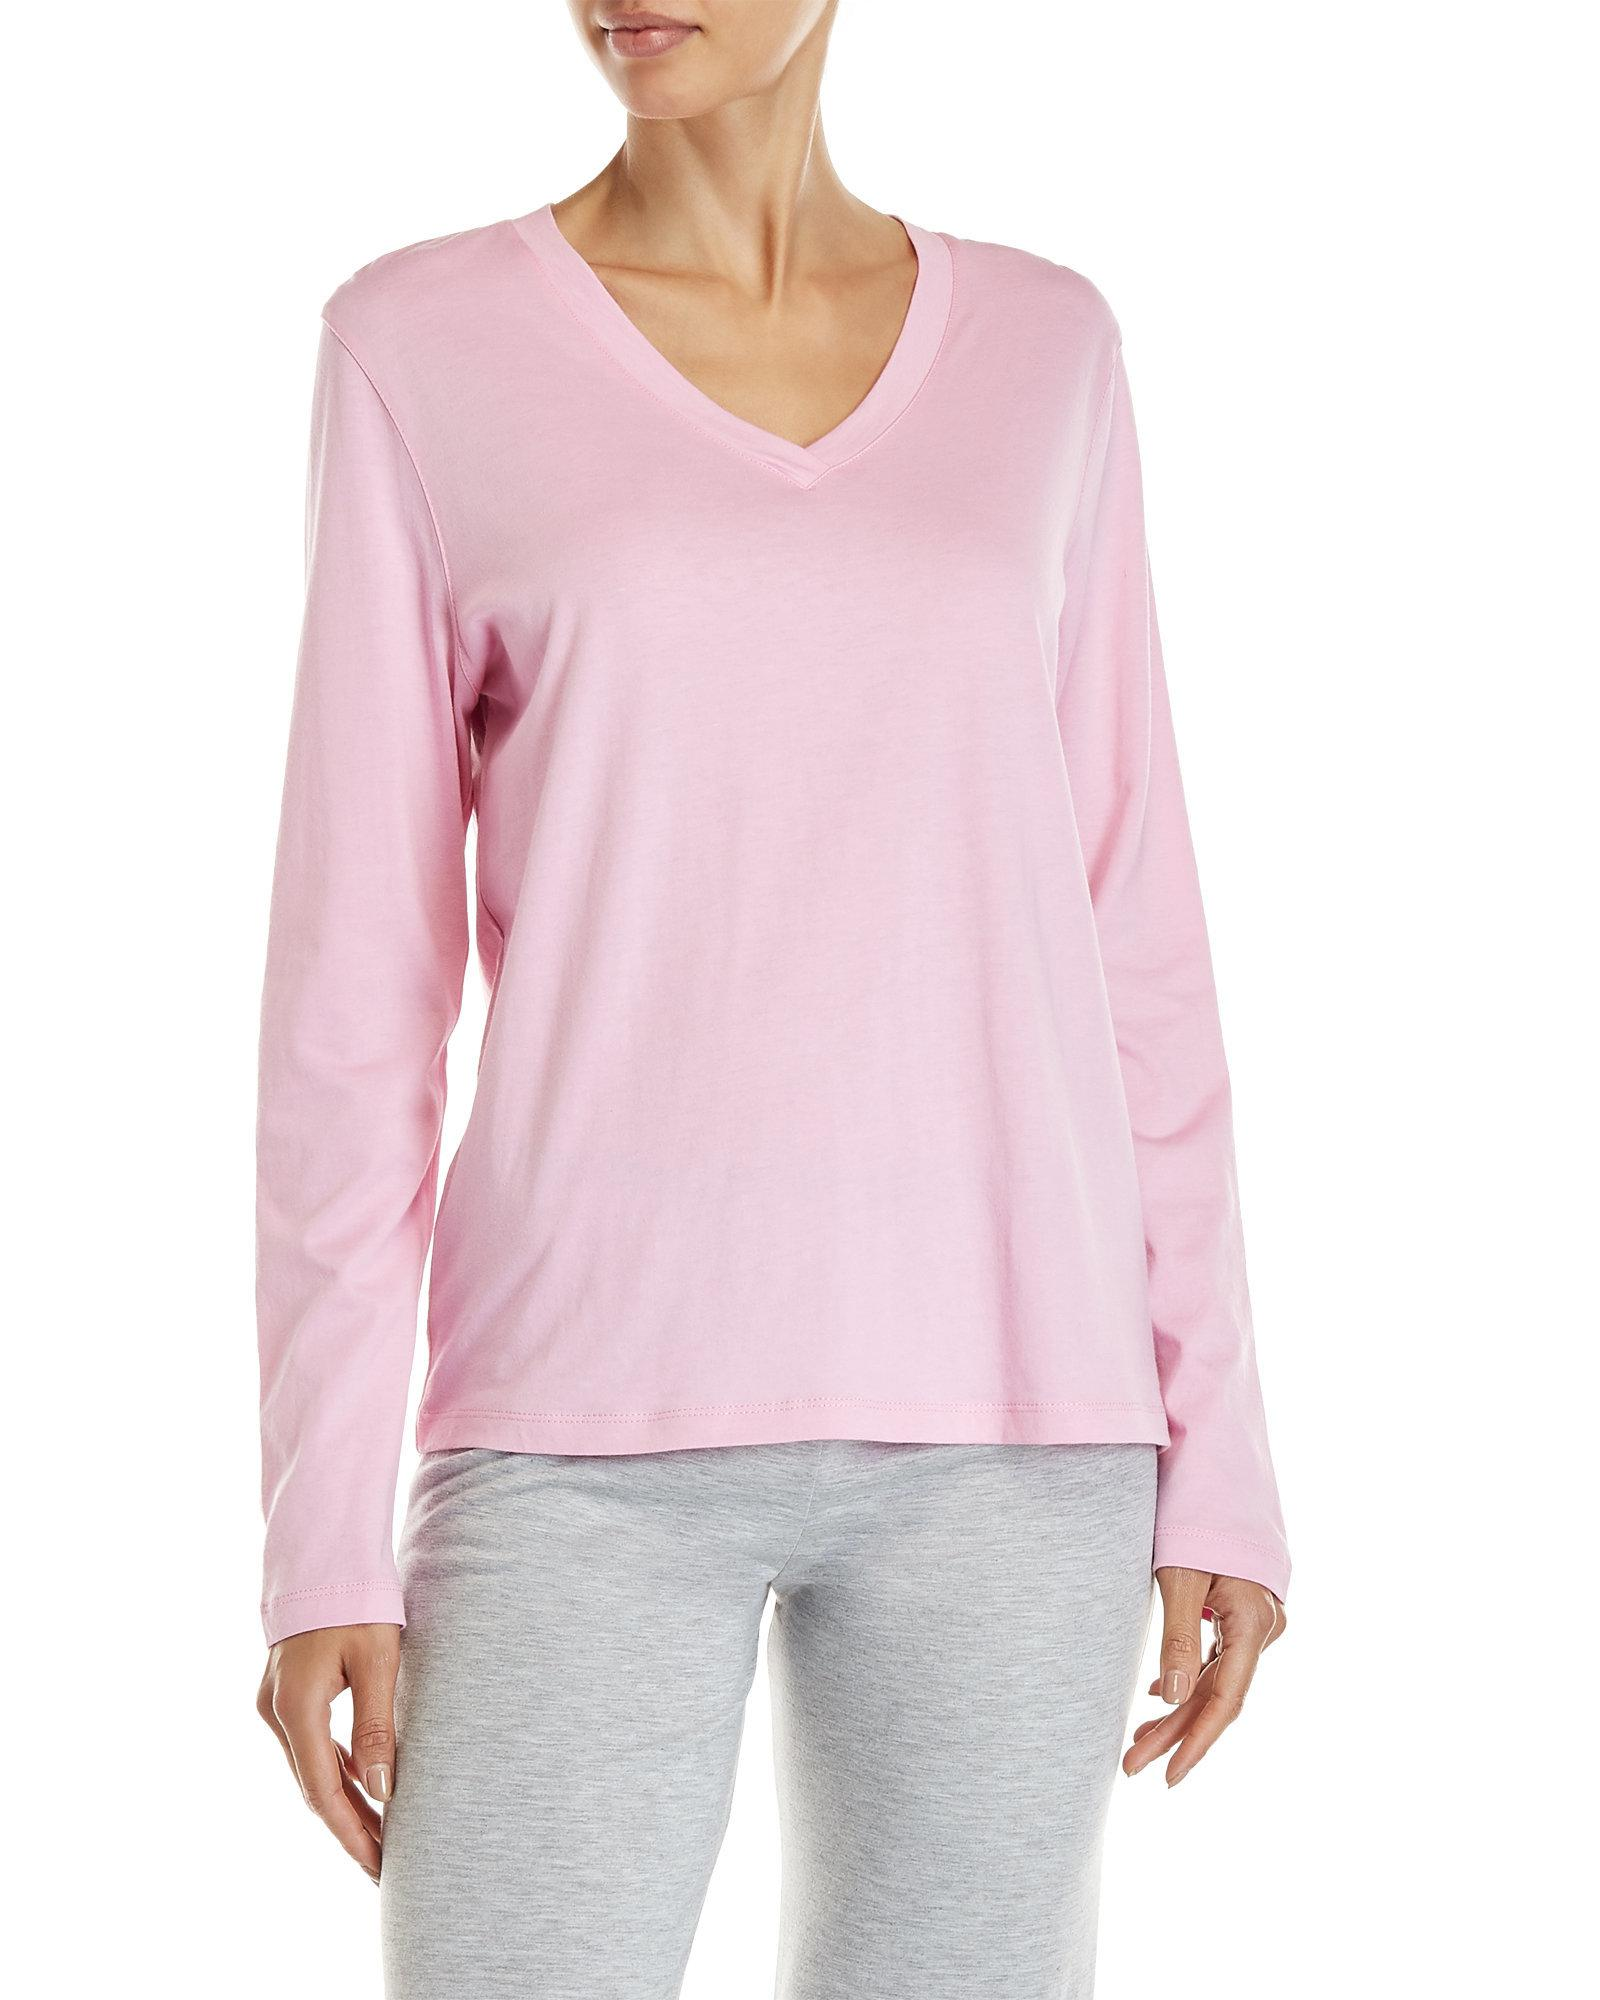 Lyst - Hue Long Sleeve V-neck Sleep Tee in Pink 6c8314221